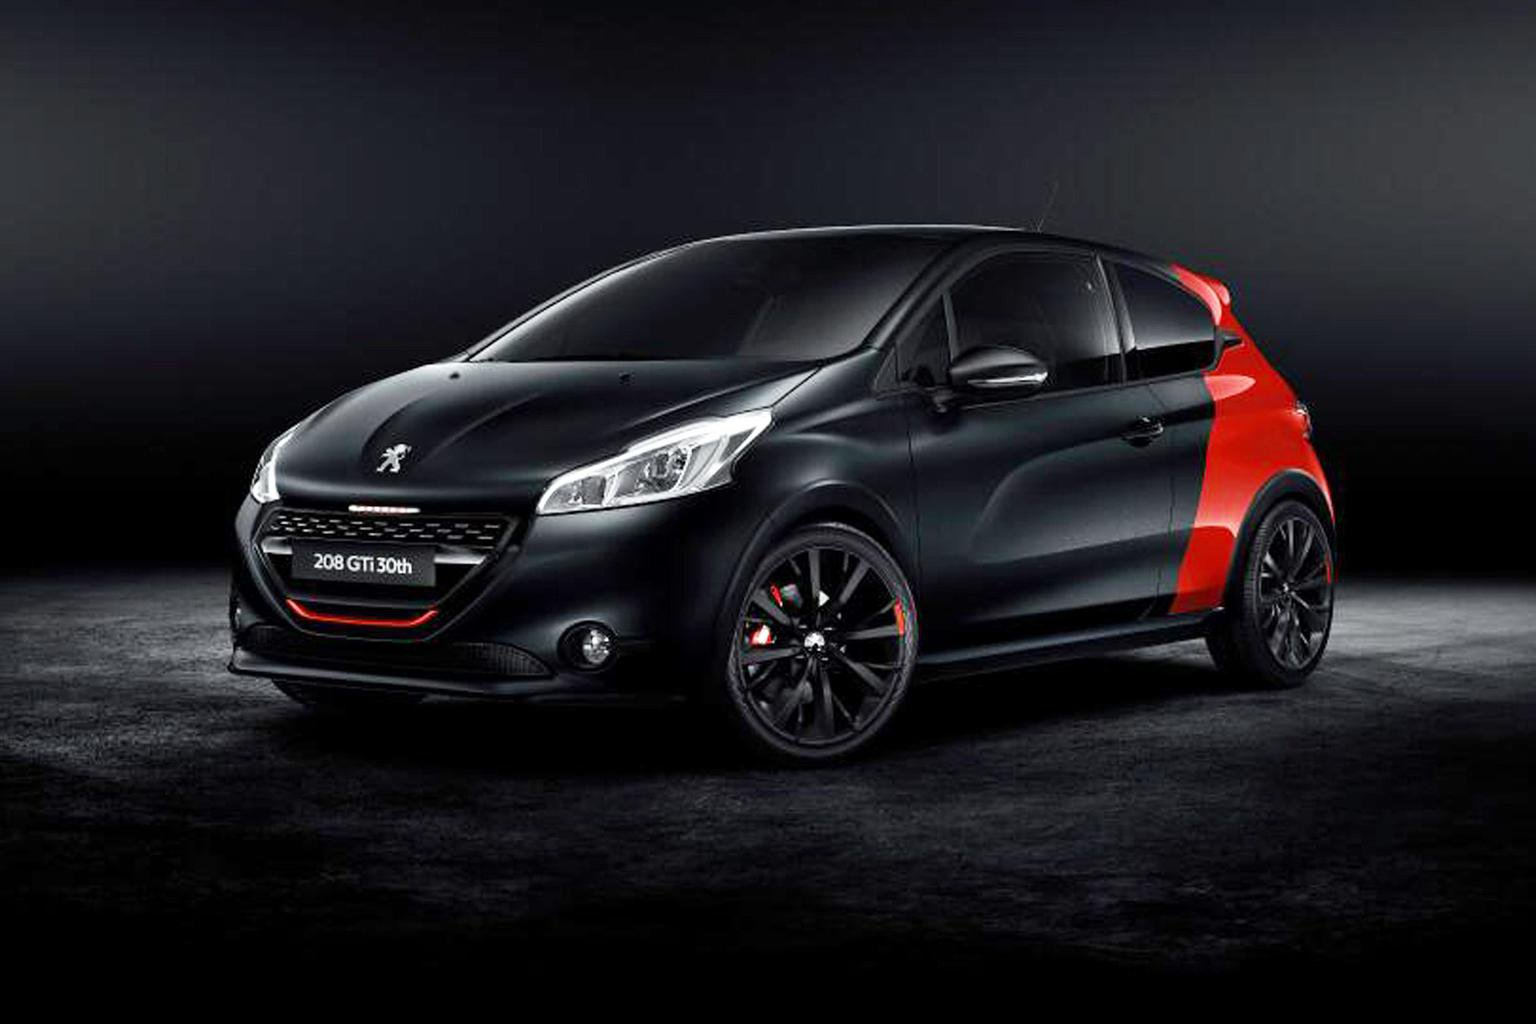 Peugeot 208 GTi 30th Anniversary edition at Goodwood